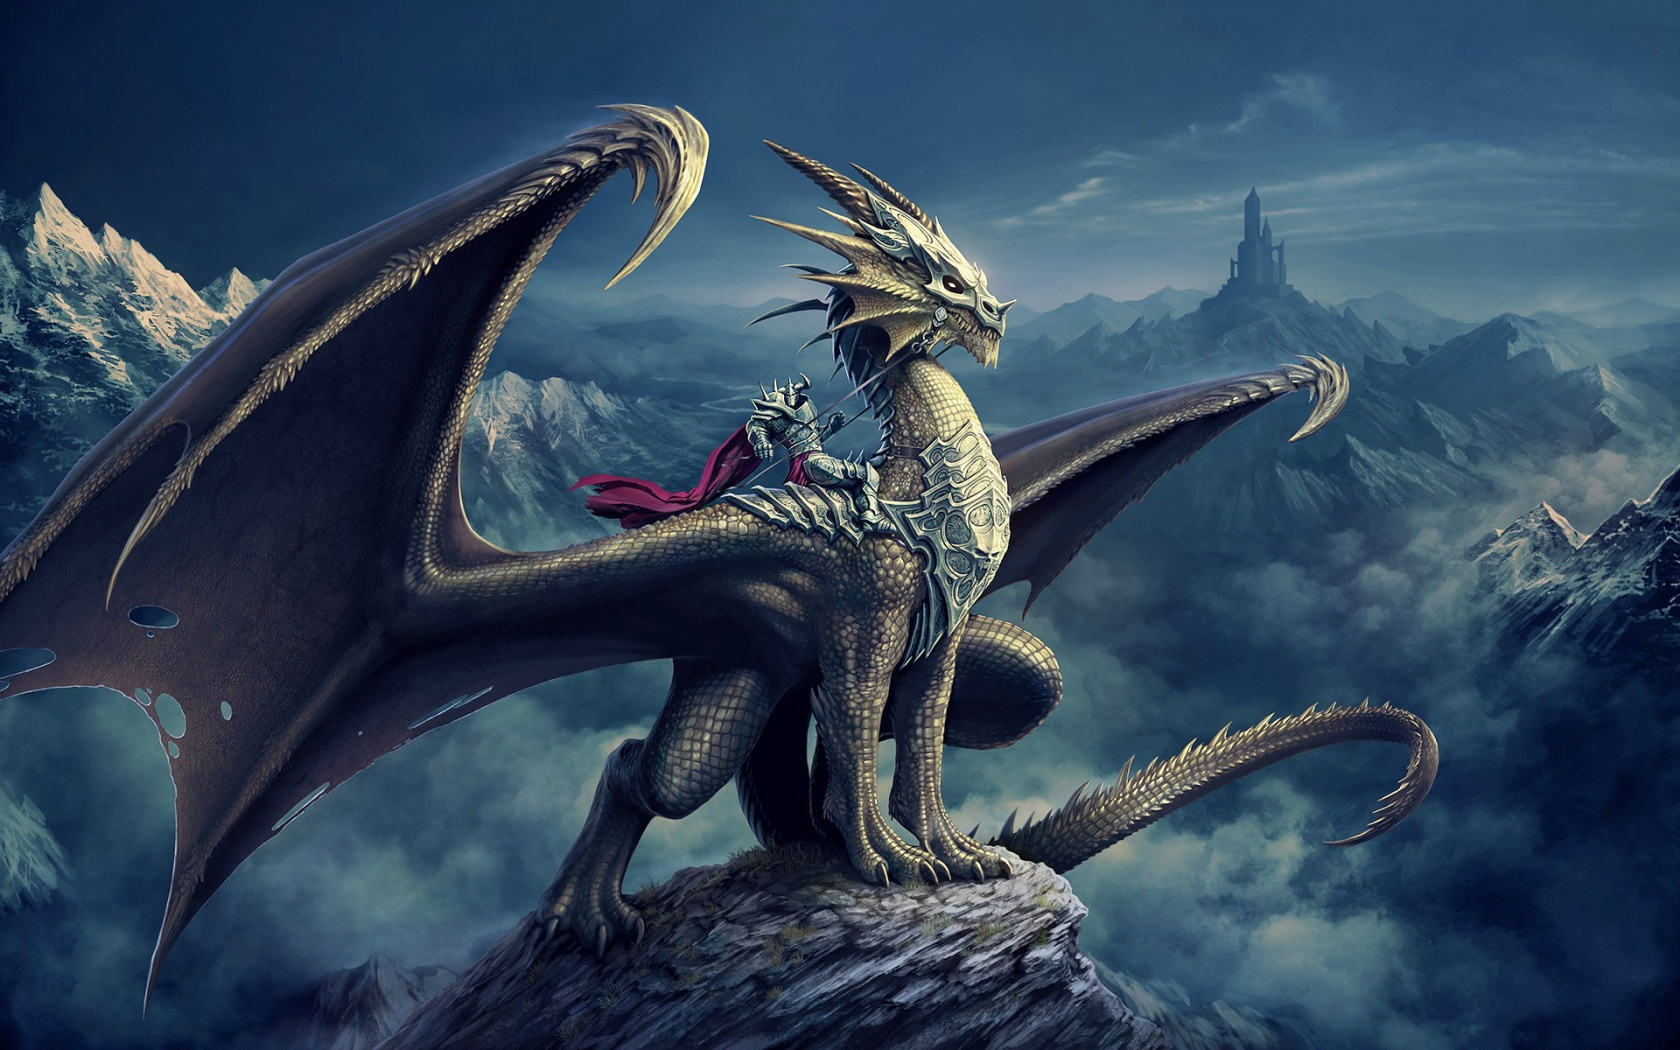 Dragon, HD Quality Pic, Elnora Delorey #2164568